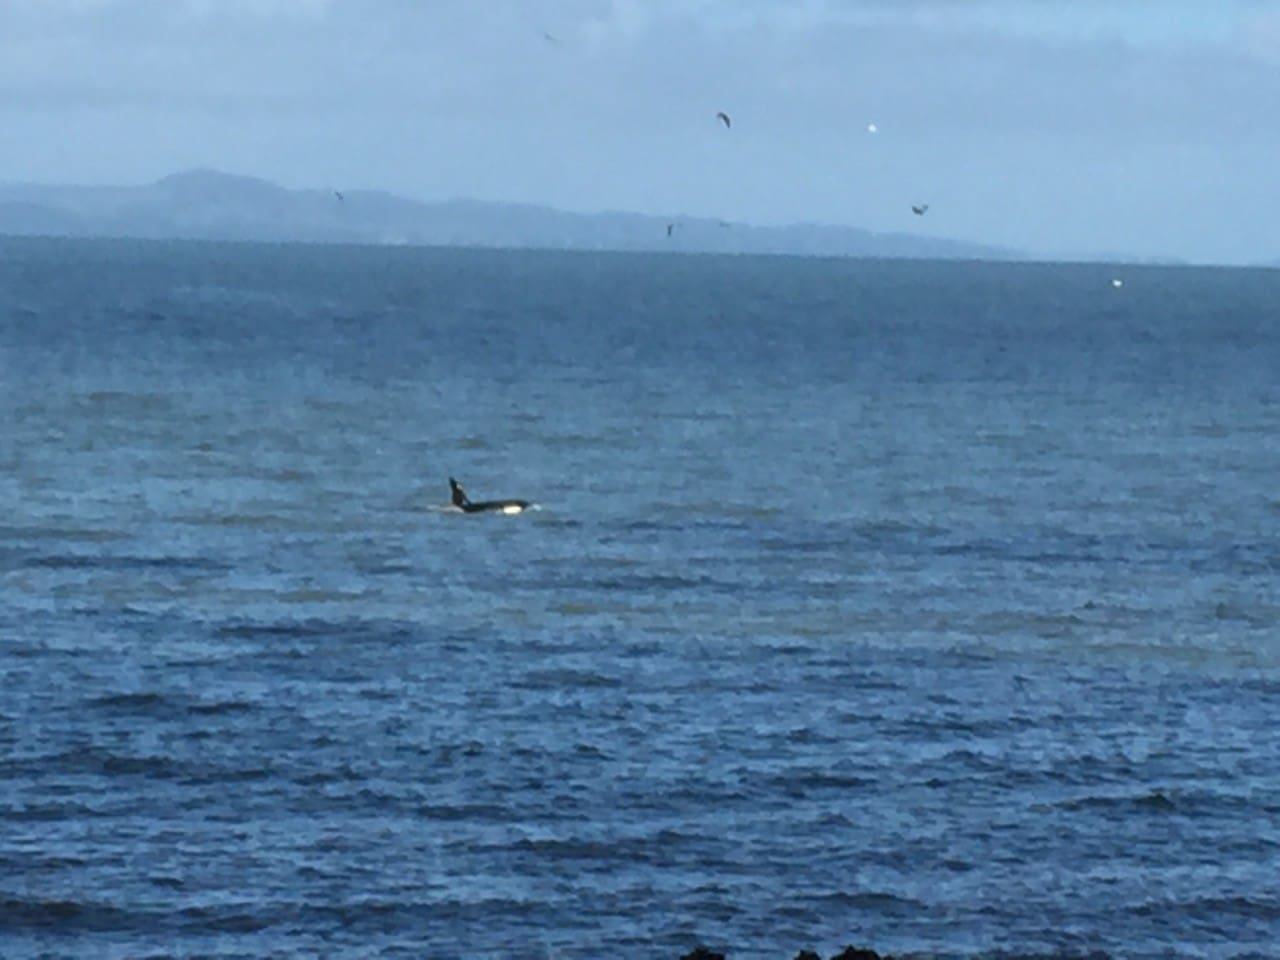 Yes, we see interesting marine life.  Orcas are regular visitors.